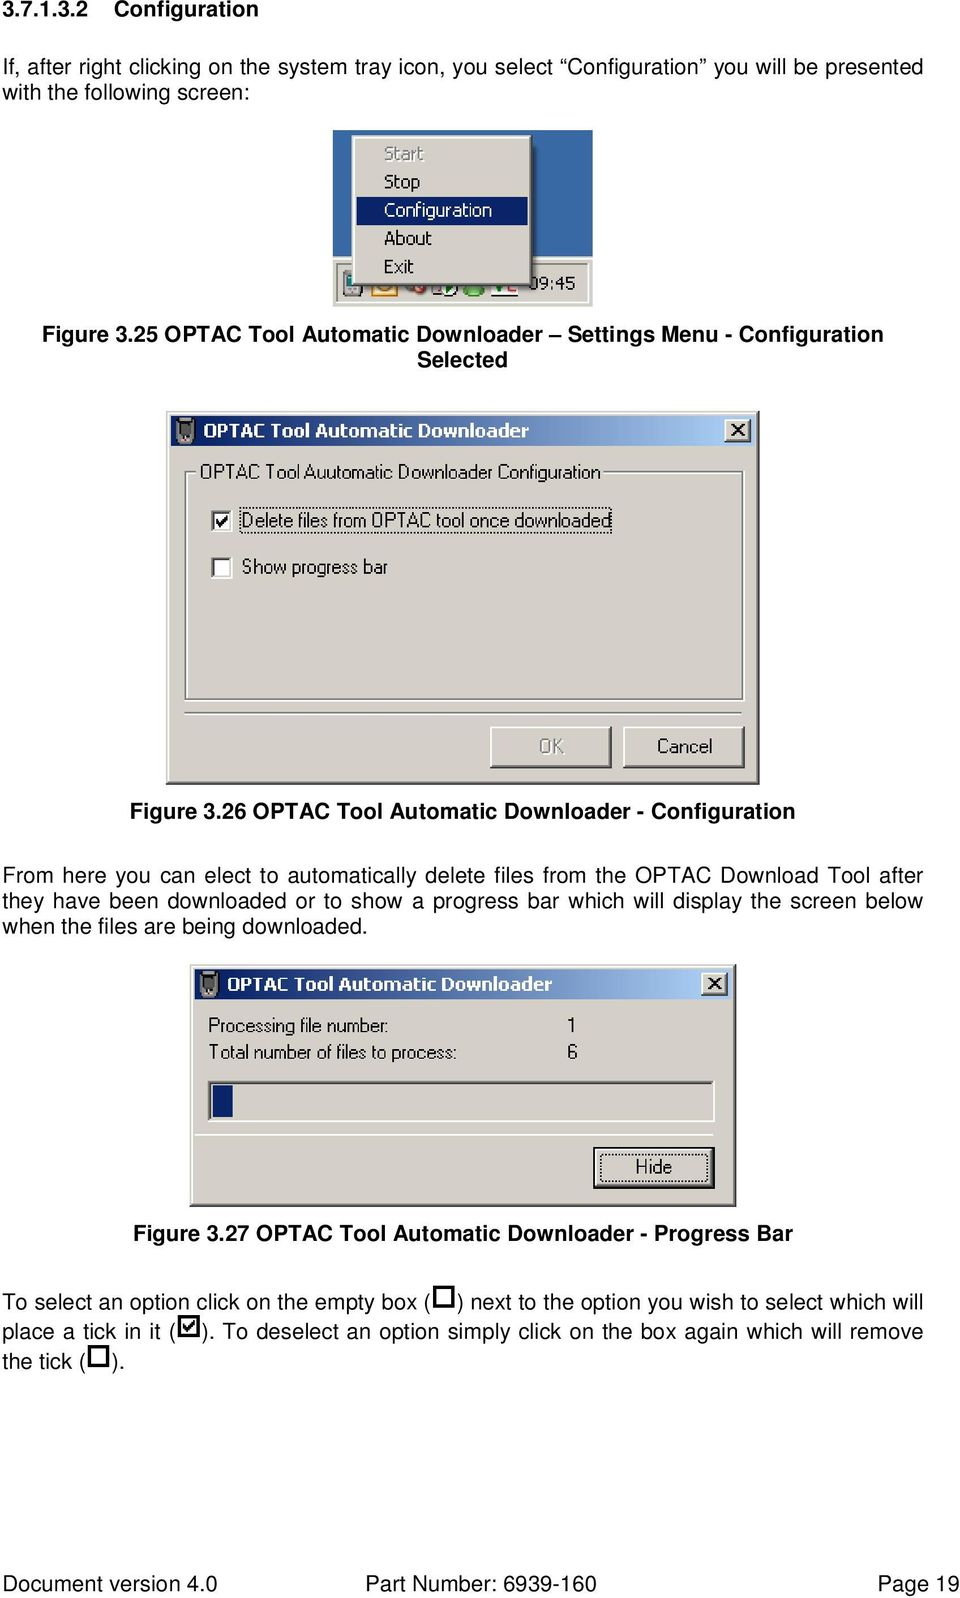 26 OPTAC Tool Automatic Downloader - Configuration From here you can elect to automatically delete files from the OPTAC Download Tool after they have been downloaded or to show a progress bar which